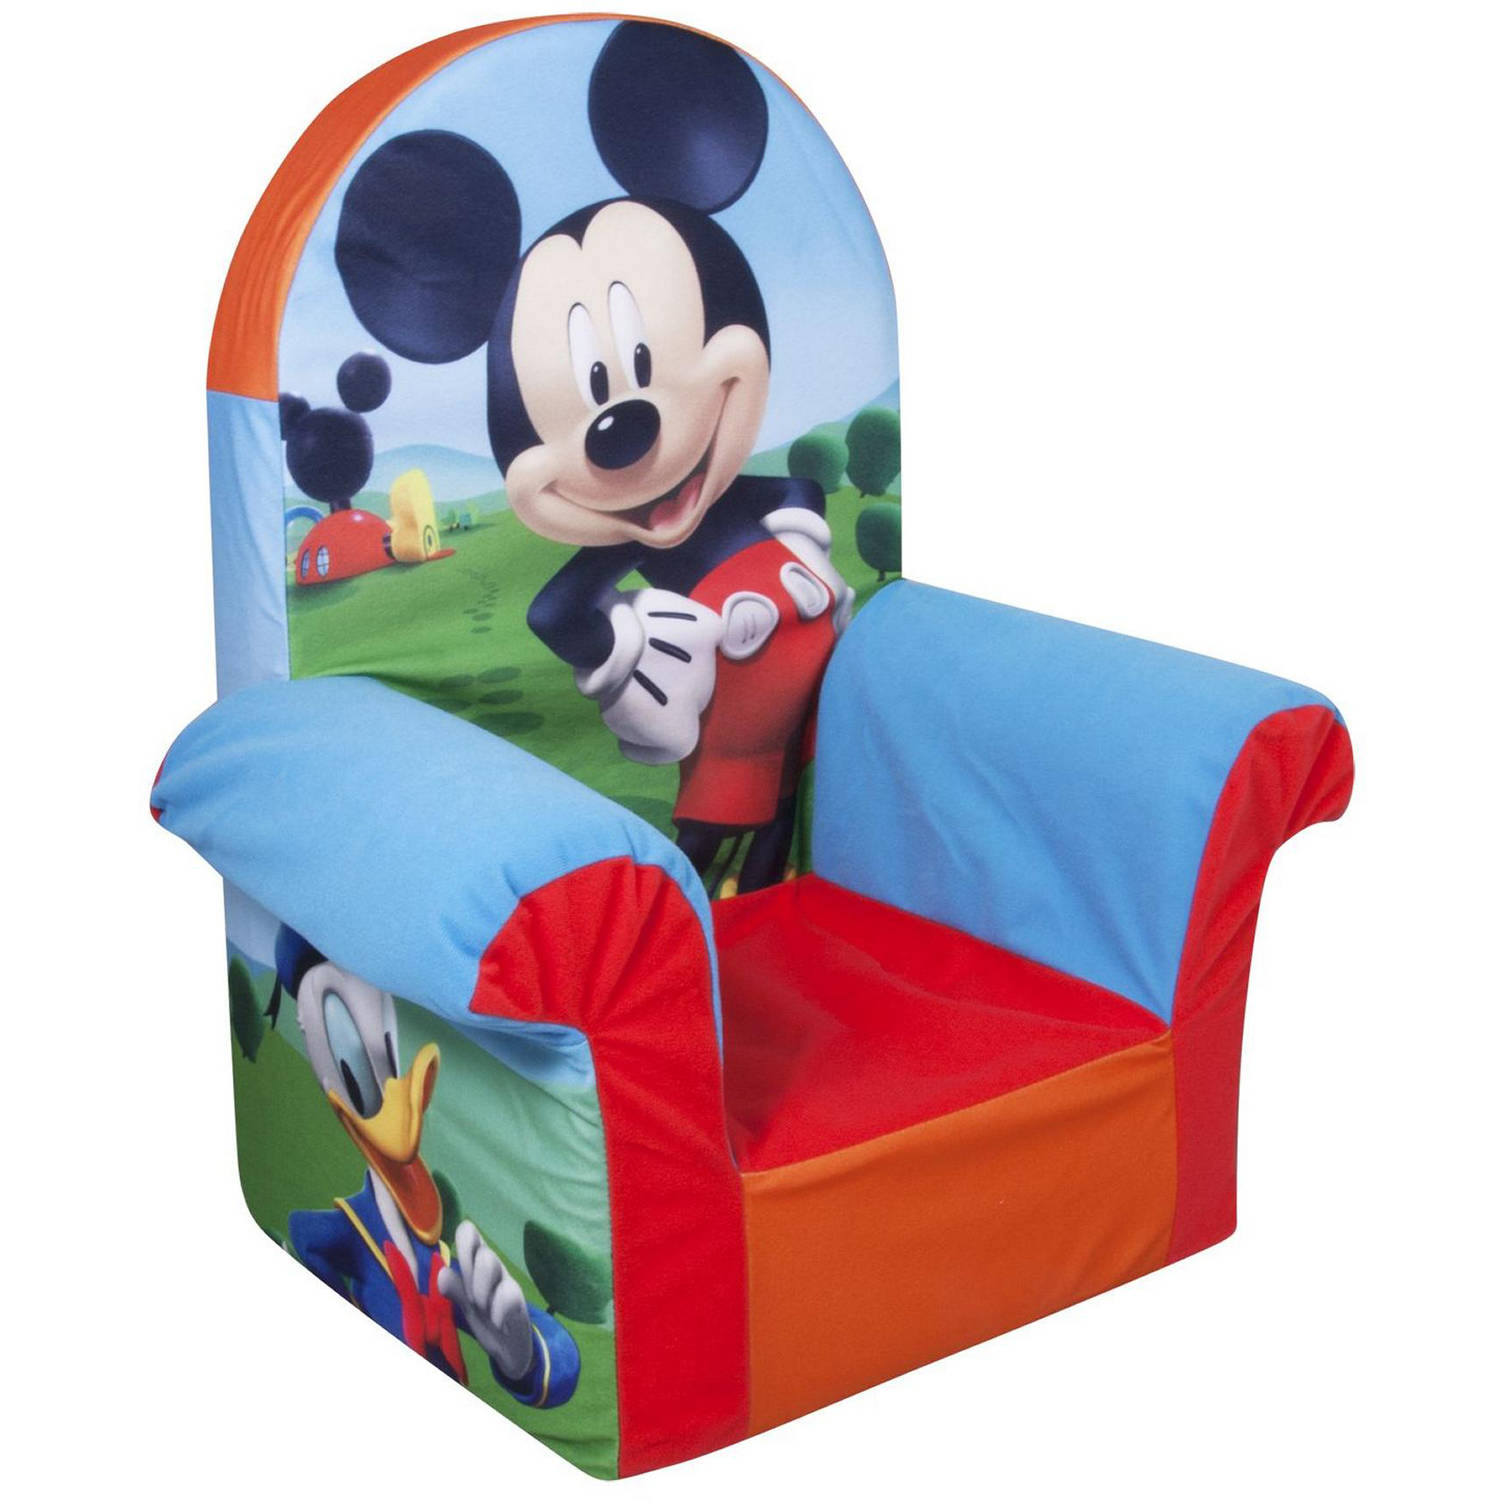 Toddler Soft Chairs Marshmallow Furniture Children S Foam High Back Chair Doc Mcstuffins High Back Chair